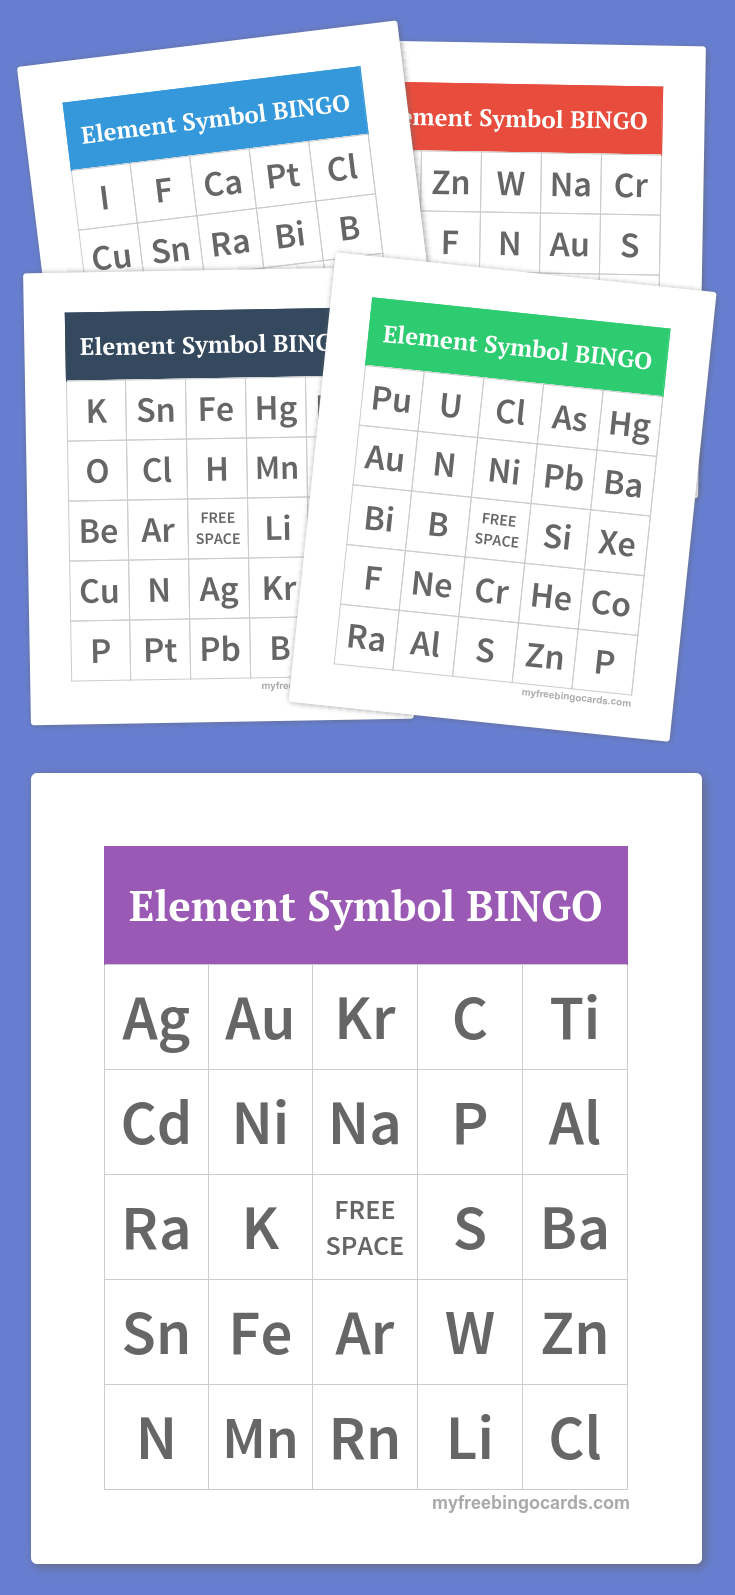 Periodic table element symbol bingo the periodic table pinterest periodic table element symbol bingo urtaz Image collections